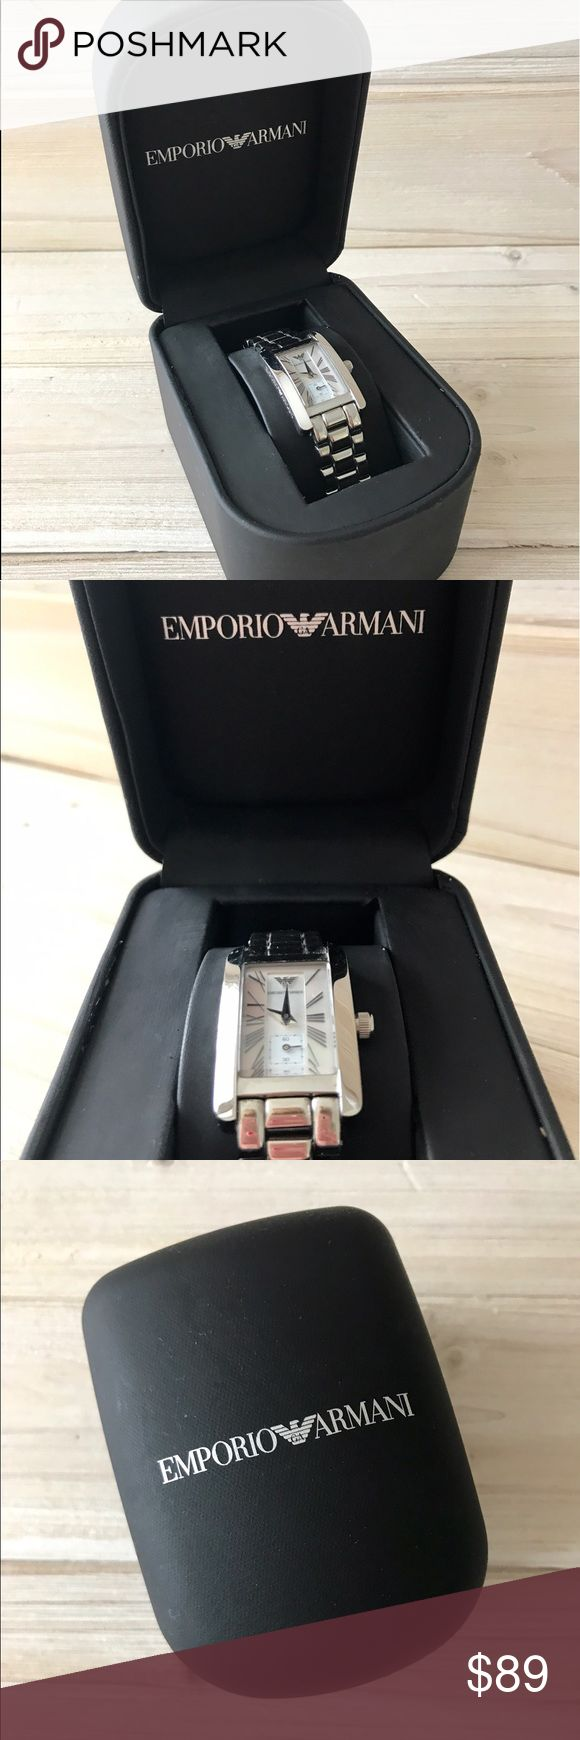 Emporio Armani Ladies Silver Classic Watch Emporio Armani Ladies Silver Classic Watch. Sophisticated style featuring a rectangular face, mother of pearl dial, Roman numeral numbering, and stainless steel throughout. Minute markers around the inner ring. Dial Type: Analog. Quartz movement. Scratch resistant mineral crystal. Pull / push crown. Good condition with some scratches on the back of watch and bezel. Will need a battery ($5). Includes extra link and original case which has remnants of…